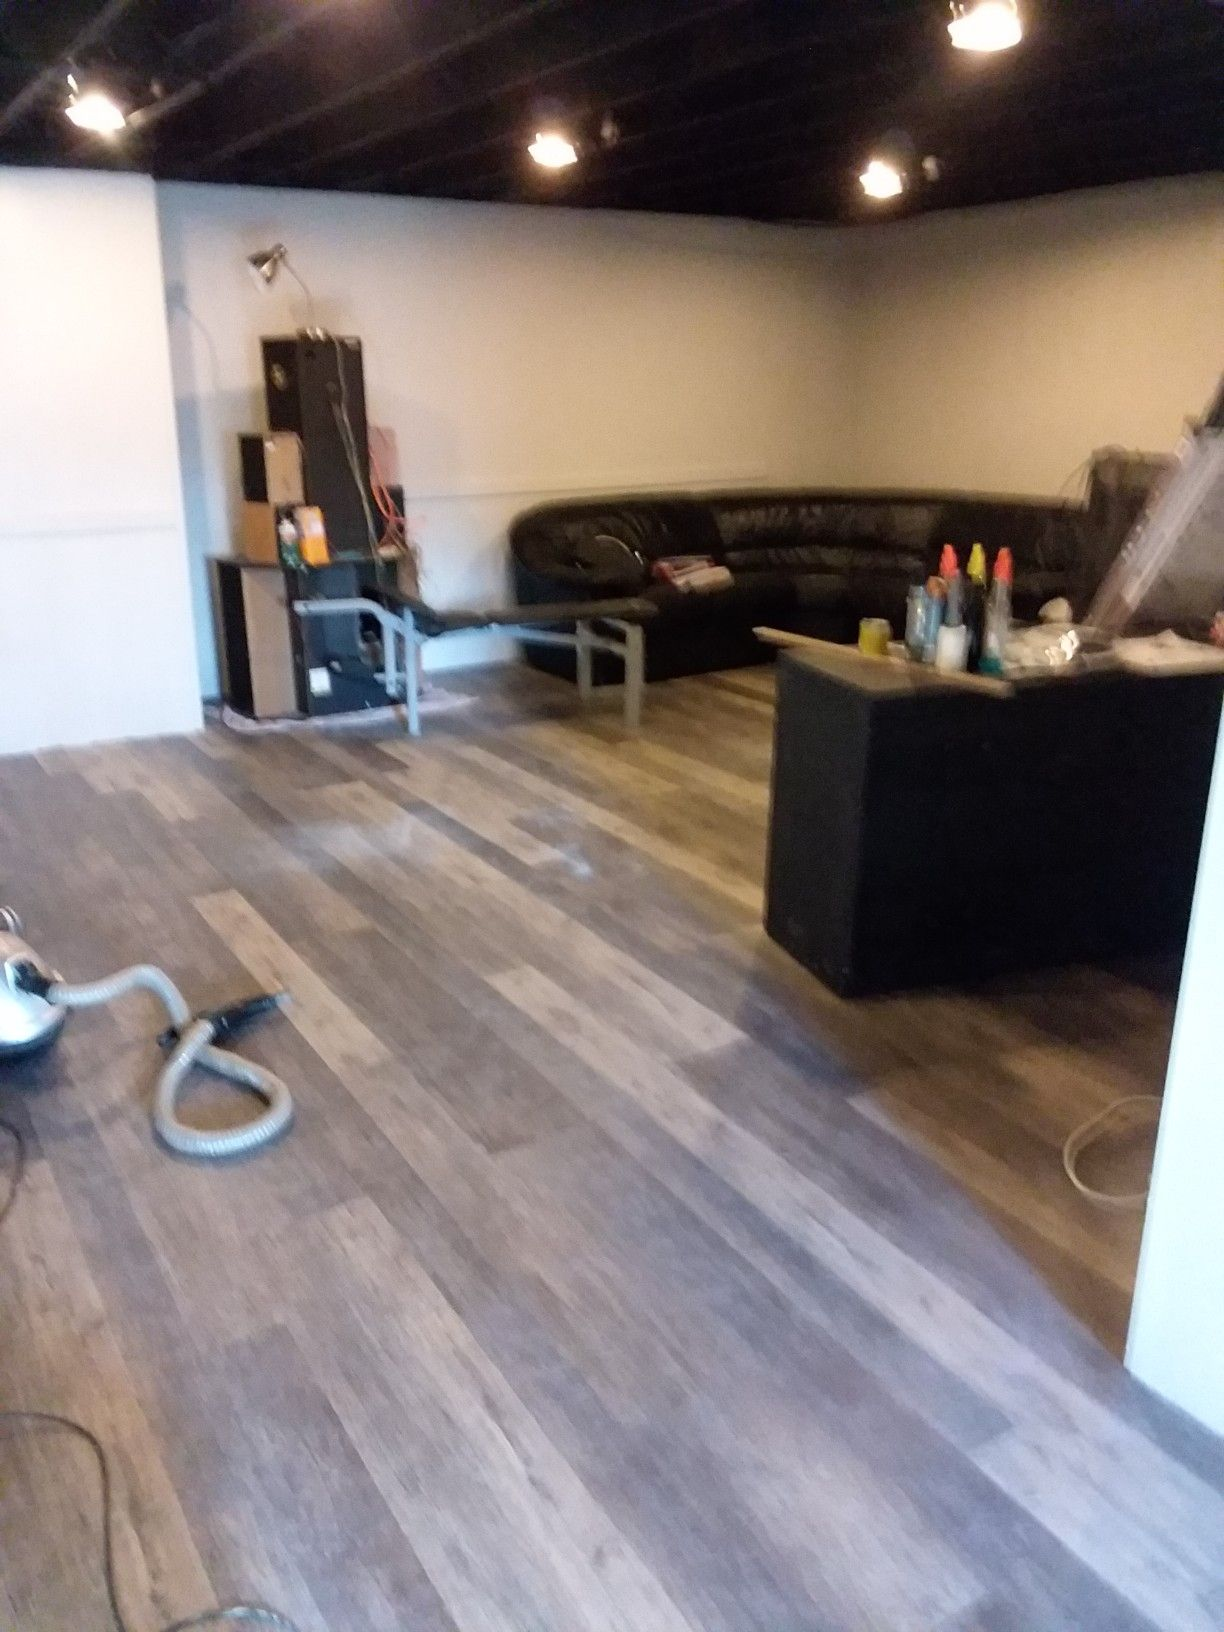 Basement Flooring Is Done February 8th 2019 Now It S Just To Get Things In Their Place Basement Flooring Lifeproof Vinyl Flooring Flooring